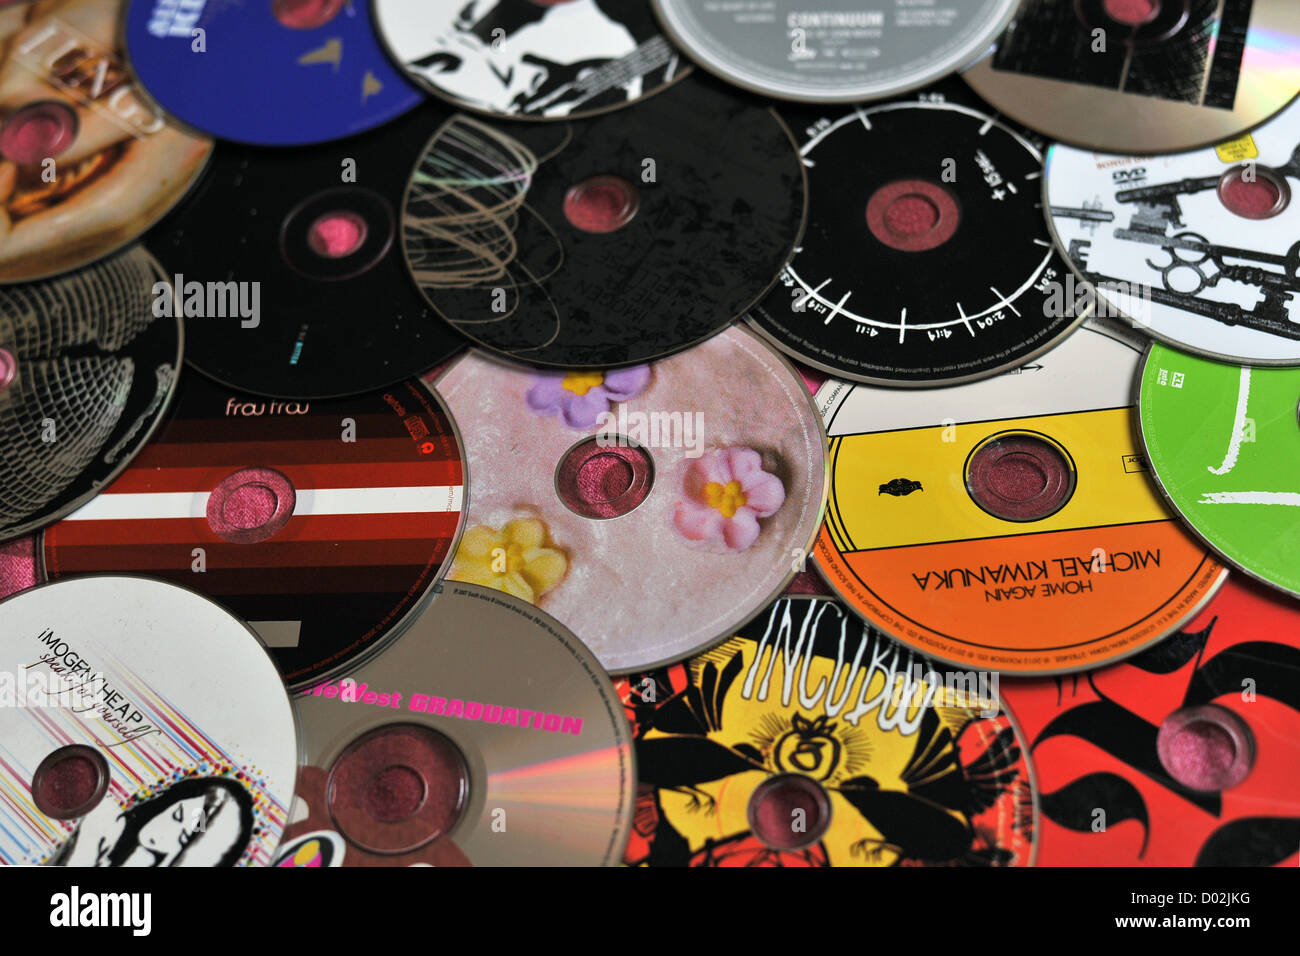 A pile of many different music CDs Stock Photo: 51689668 - Alamy